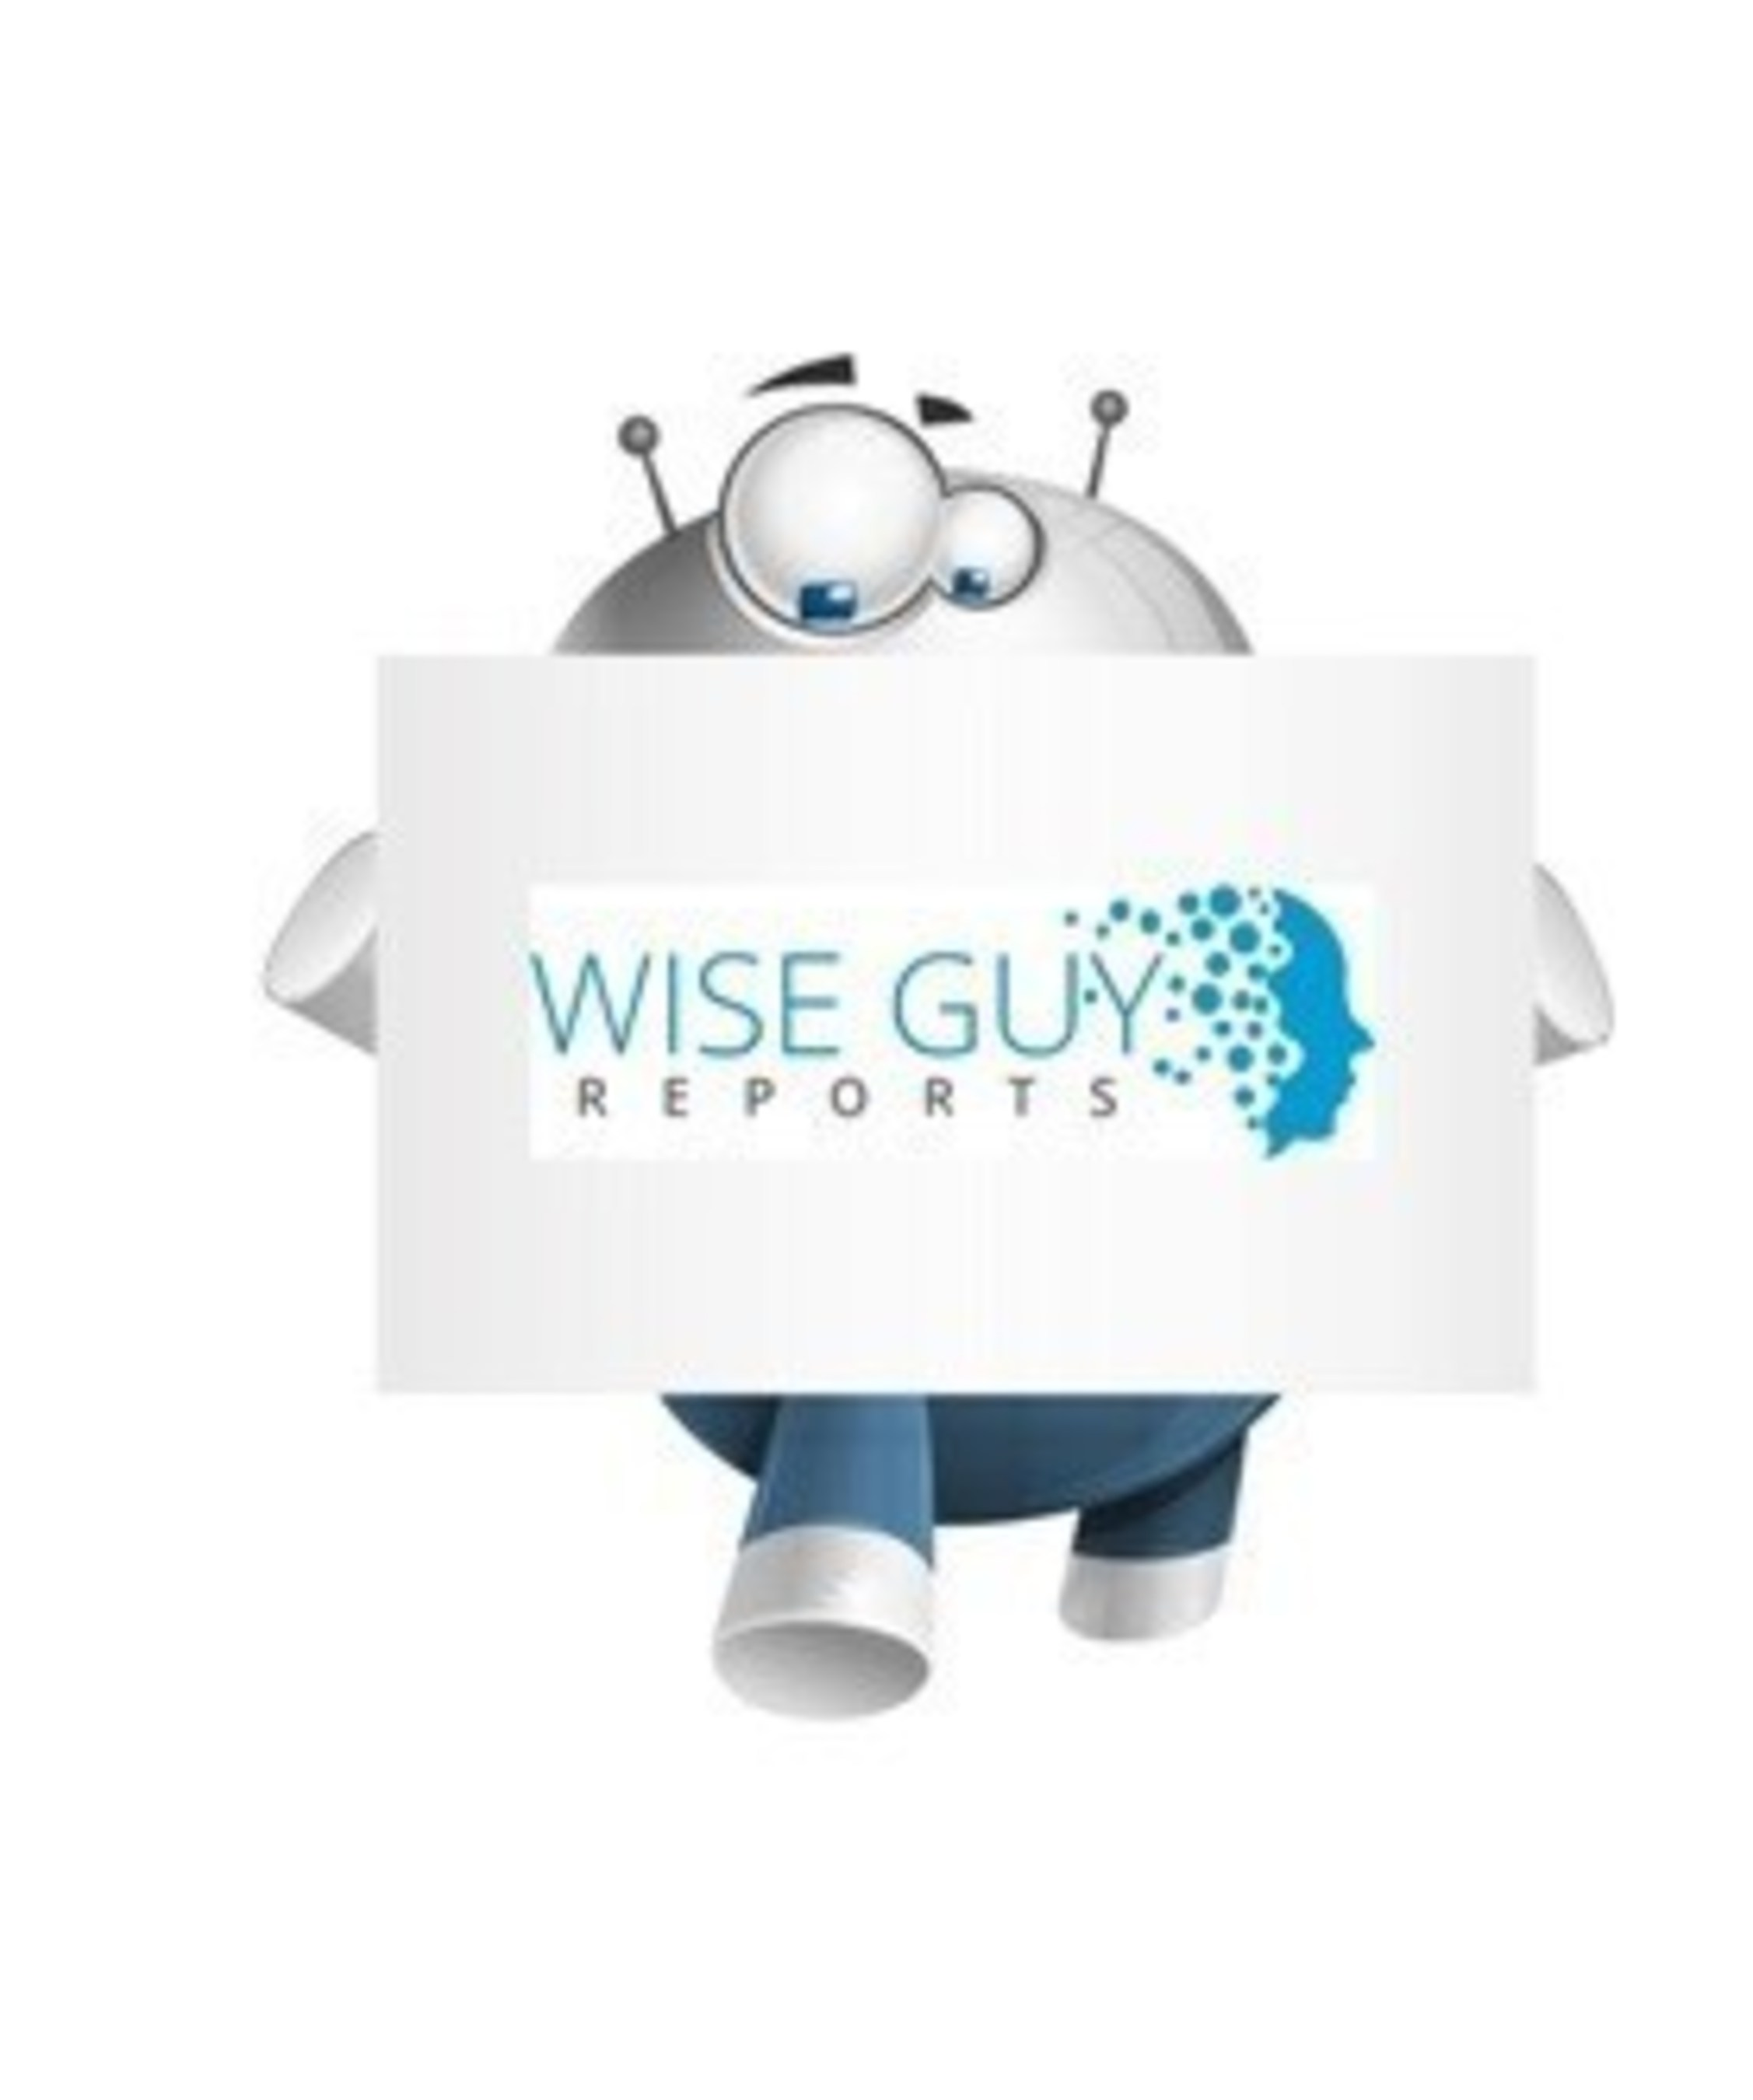 Virtual Reality Market to 2019 - Mobile Gaming Led in Revenue Says a New Report Available at WiseGuyReports.com